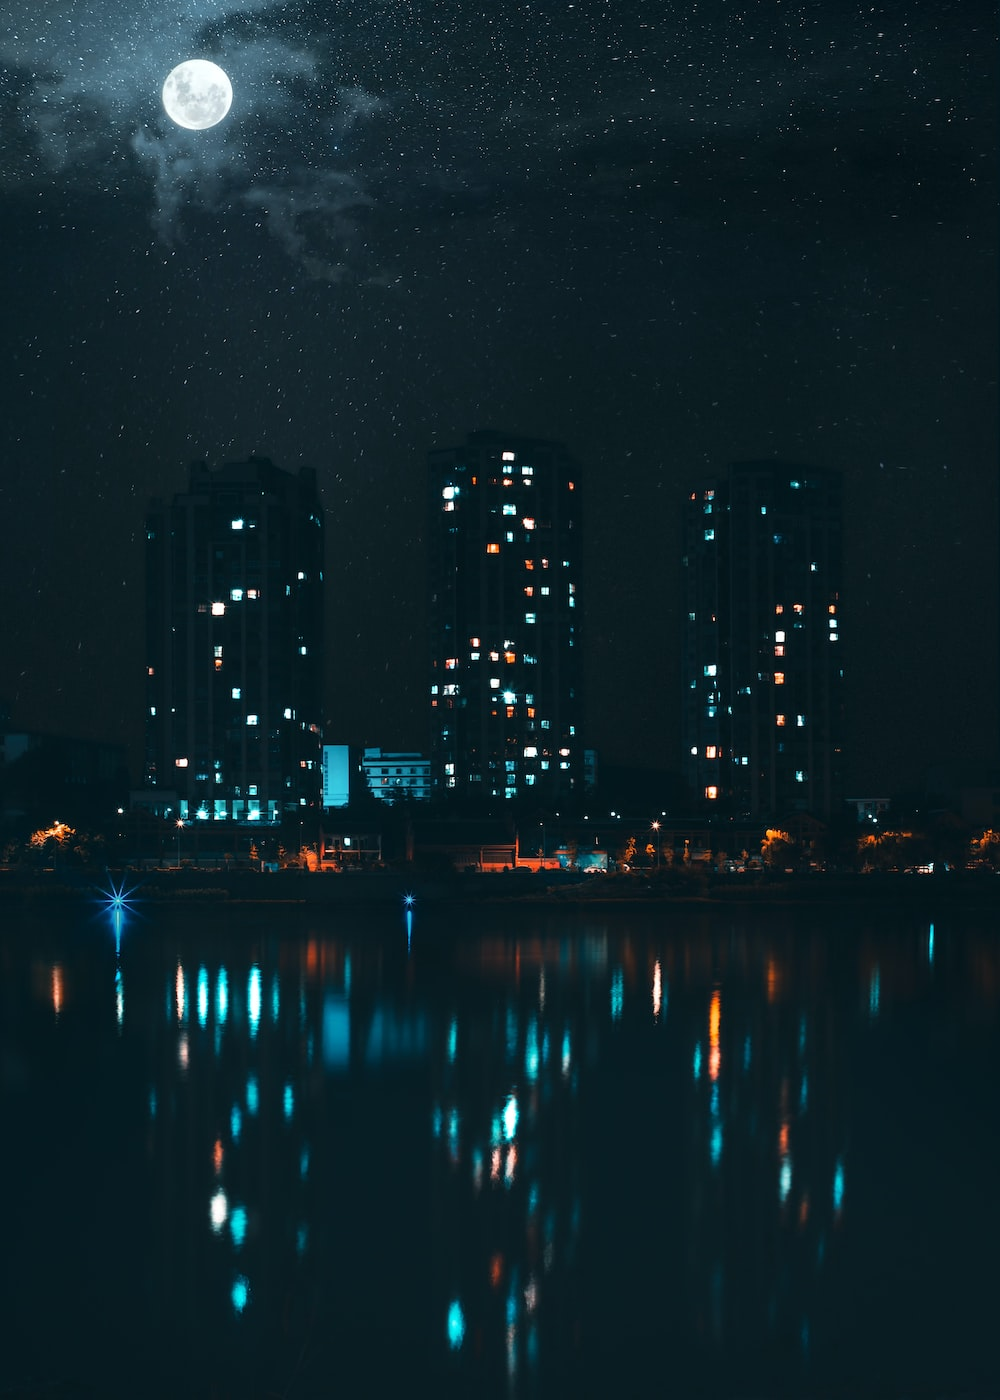 lighted building reflection on body of water during night